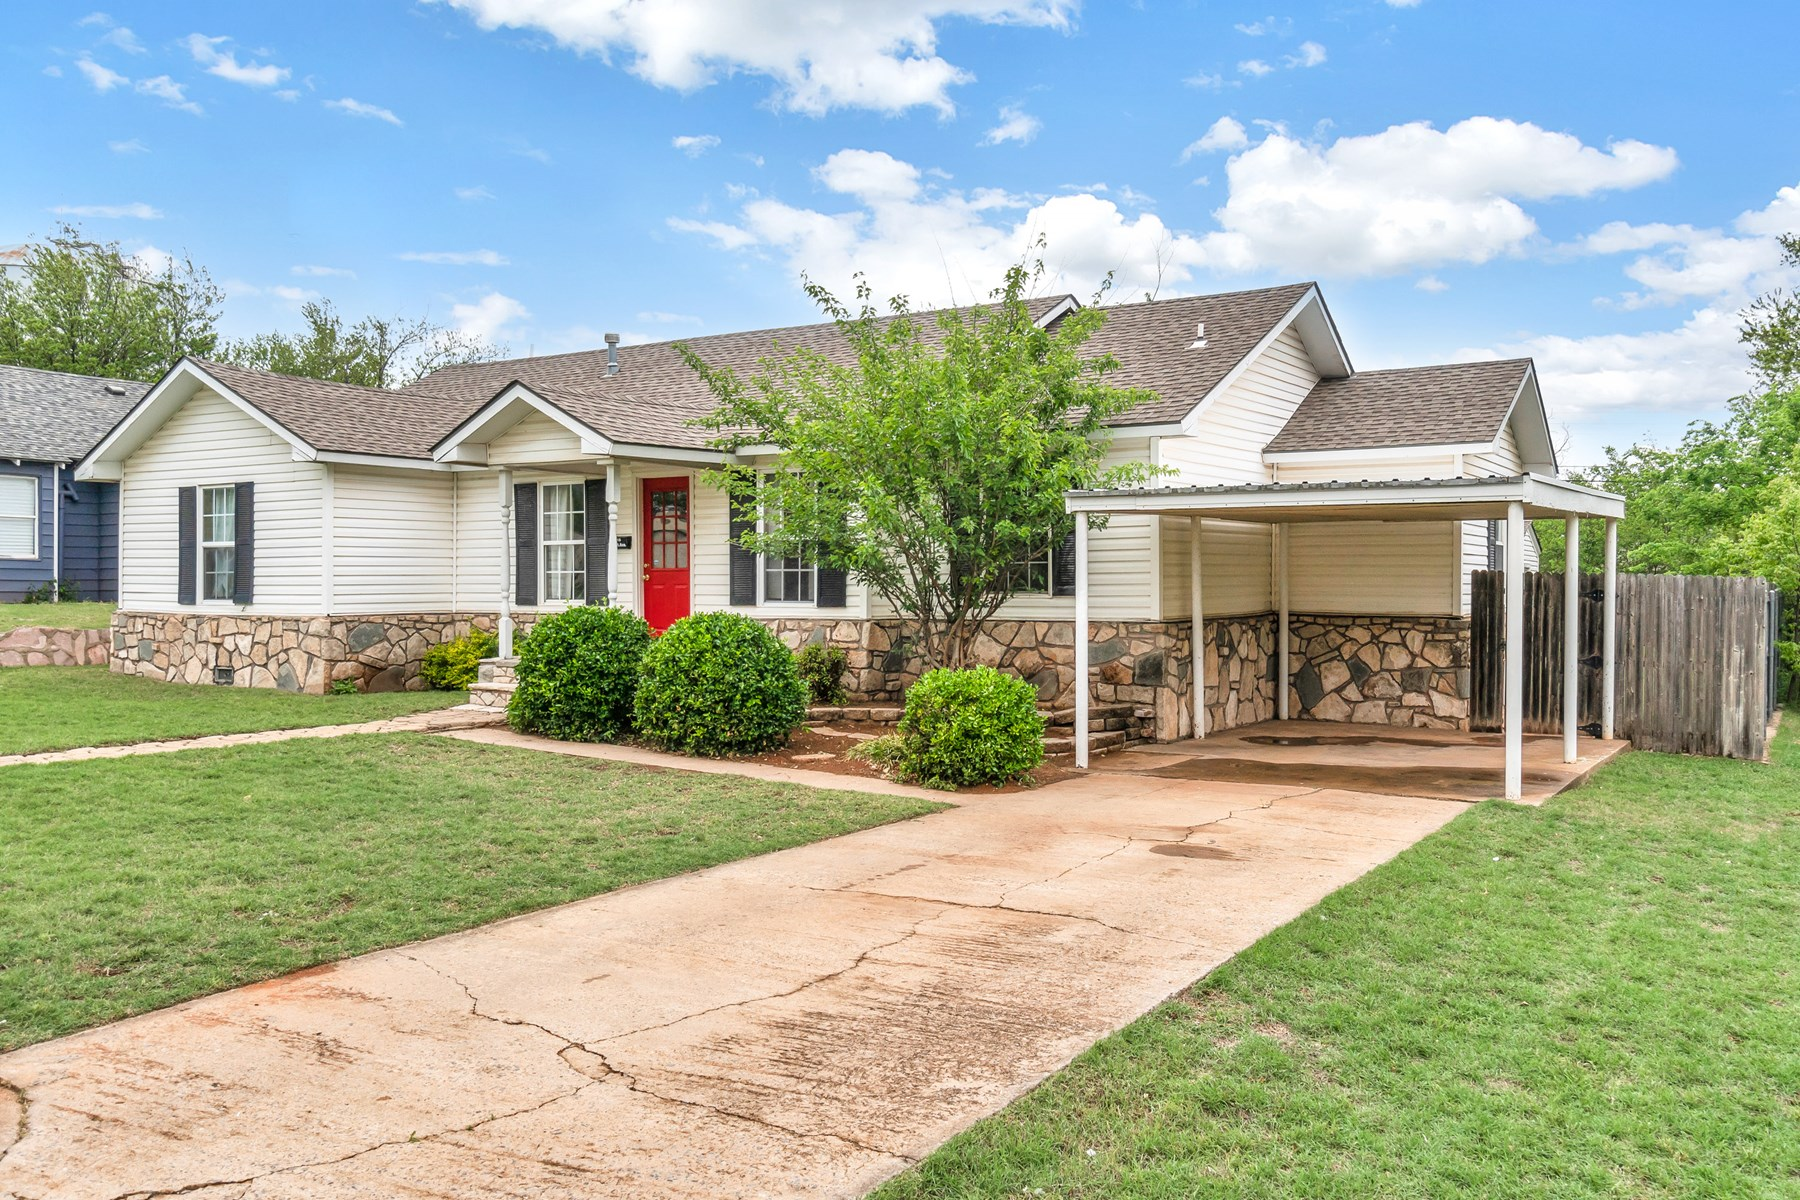 3 BEDROOM HOME FOR SALE IN WESTERN OKLAHOMA